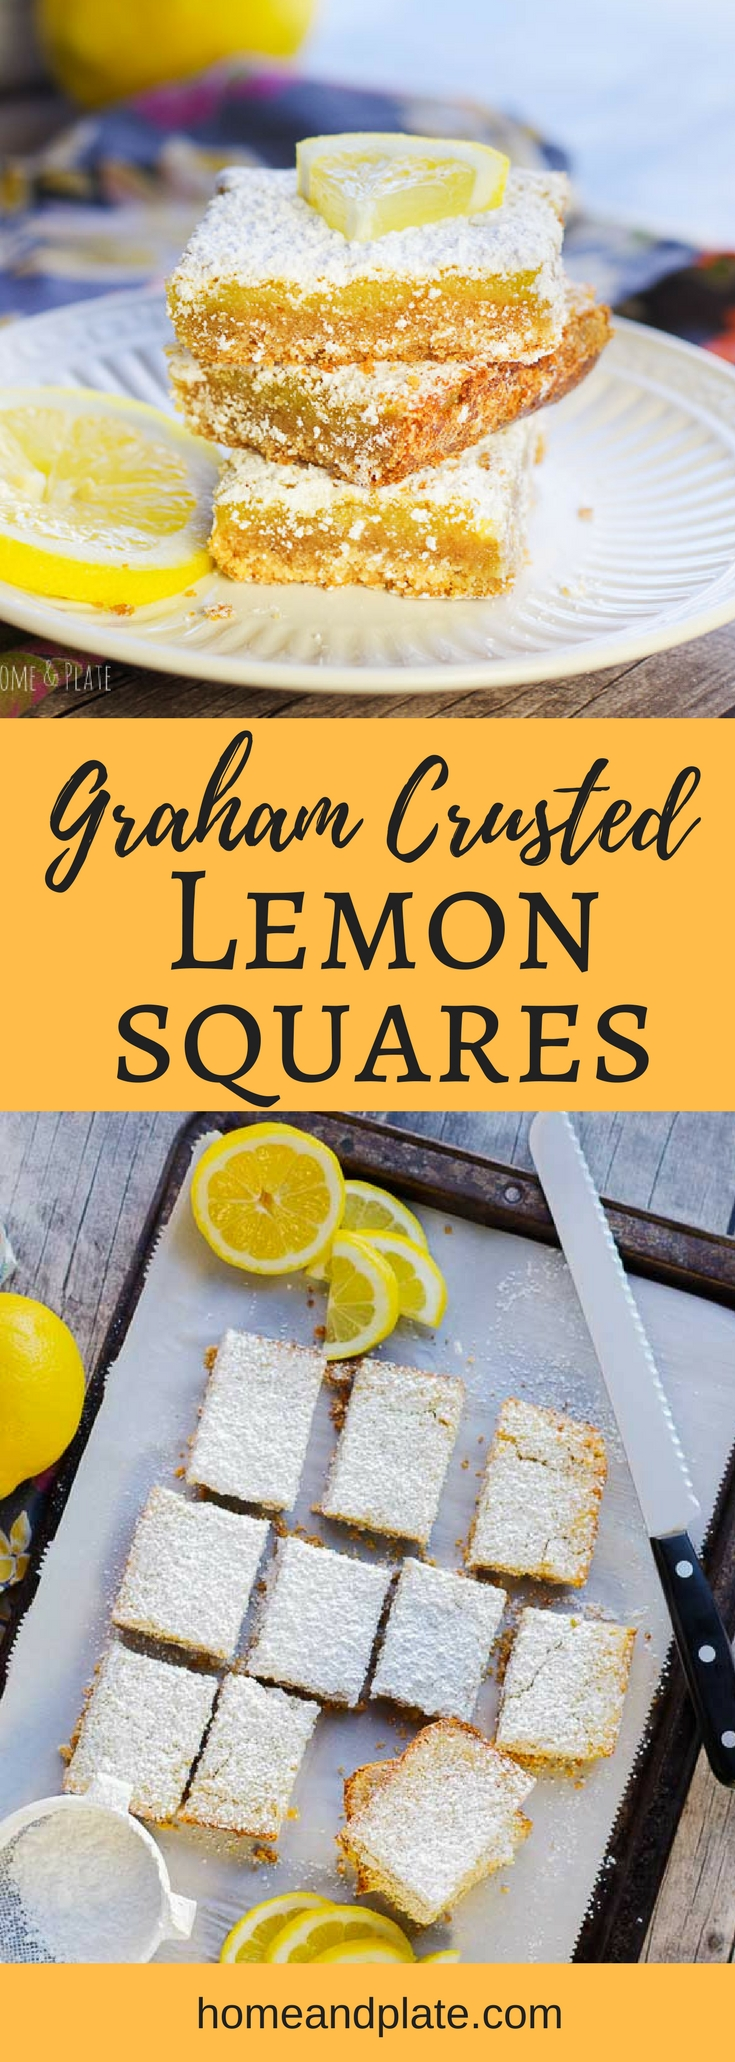 #ad | Graham Crusted Lemon Squares | These lemon squares feature an easy, homemade graham cracker-like crust and a sweet and tart lemon filling. They are the ideal dessert for your spring and Easter parties. | Home & Plate | #lemonsquares #lemonbars #dessert #lemon